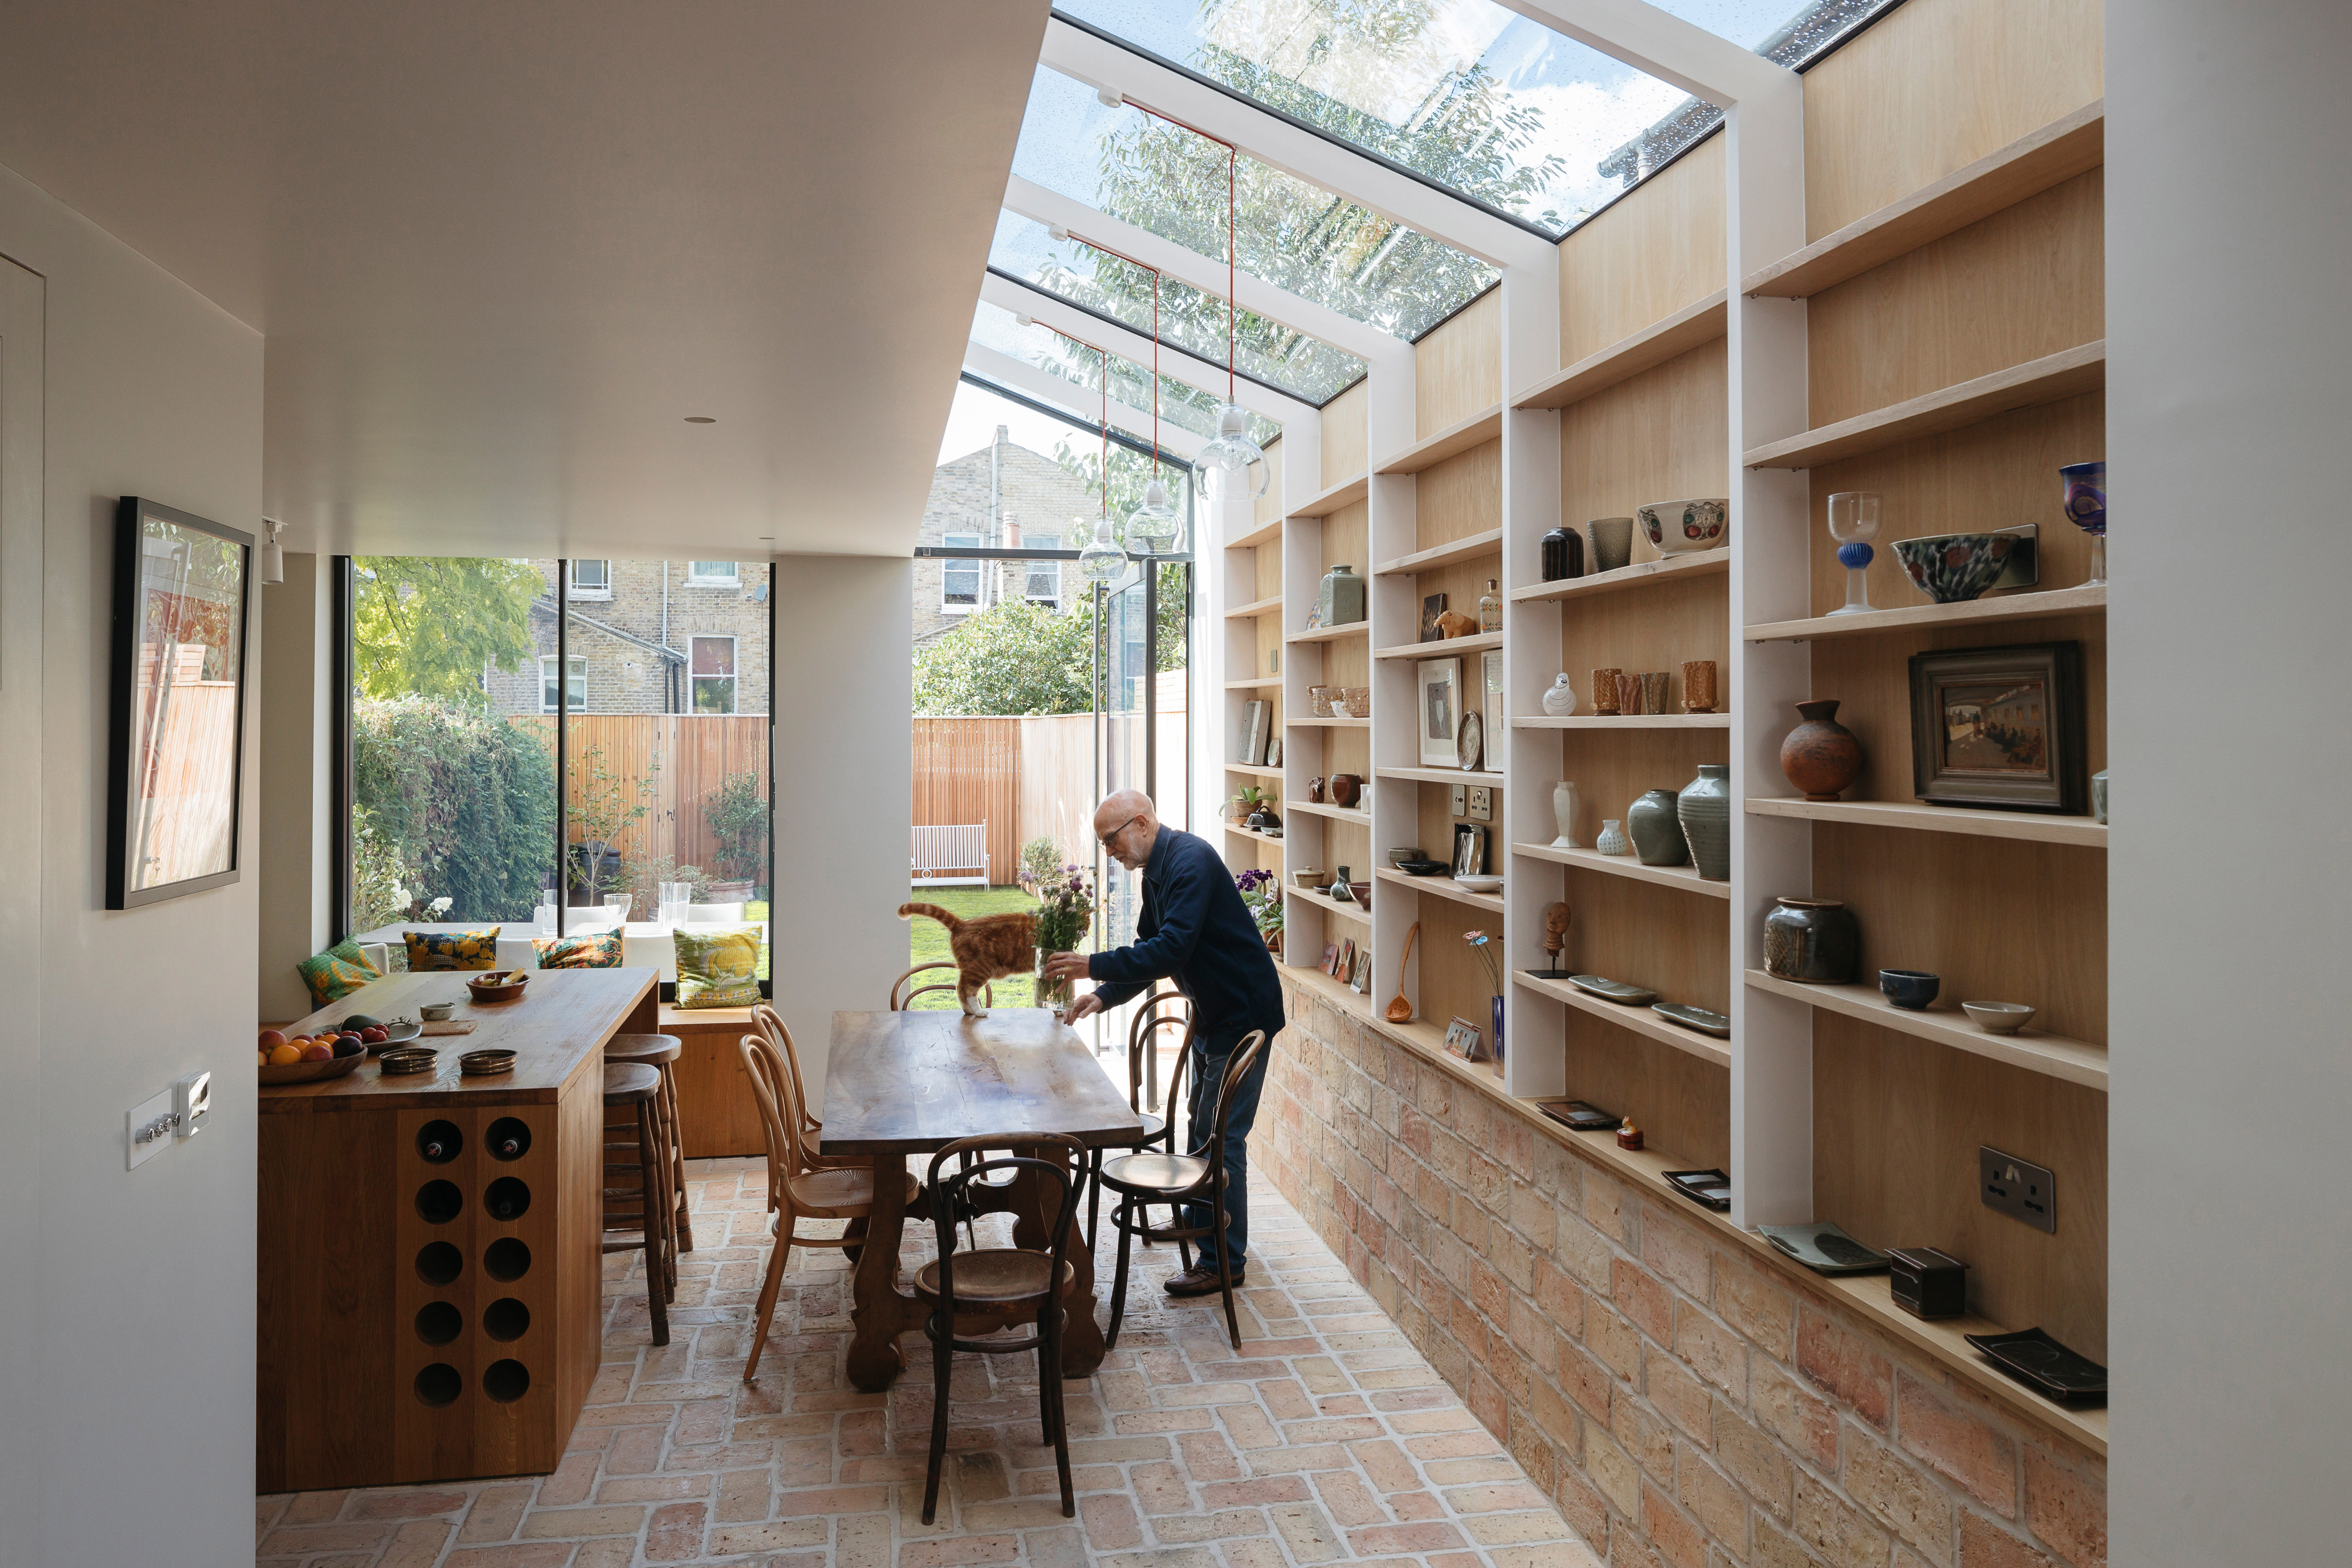 </p> <p>Find your ideal home design pro on designfor-me.com - get matched and see who's interested in your home project. Click image to see more inspiration from our design pros</p> <p>Design by Neil, architect from Islington, London</p> <p>#architecture #homedesign #modernhomes #homeinspiration #sideextensions #sidereturn #sideextensionideas #slidingdoors #skylights #rooflights </p> <p>